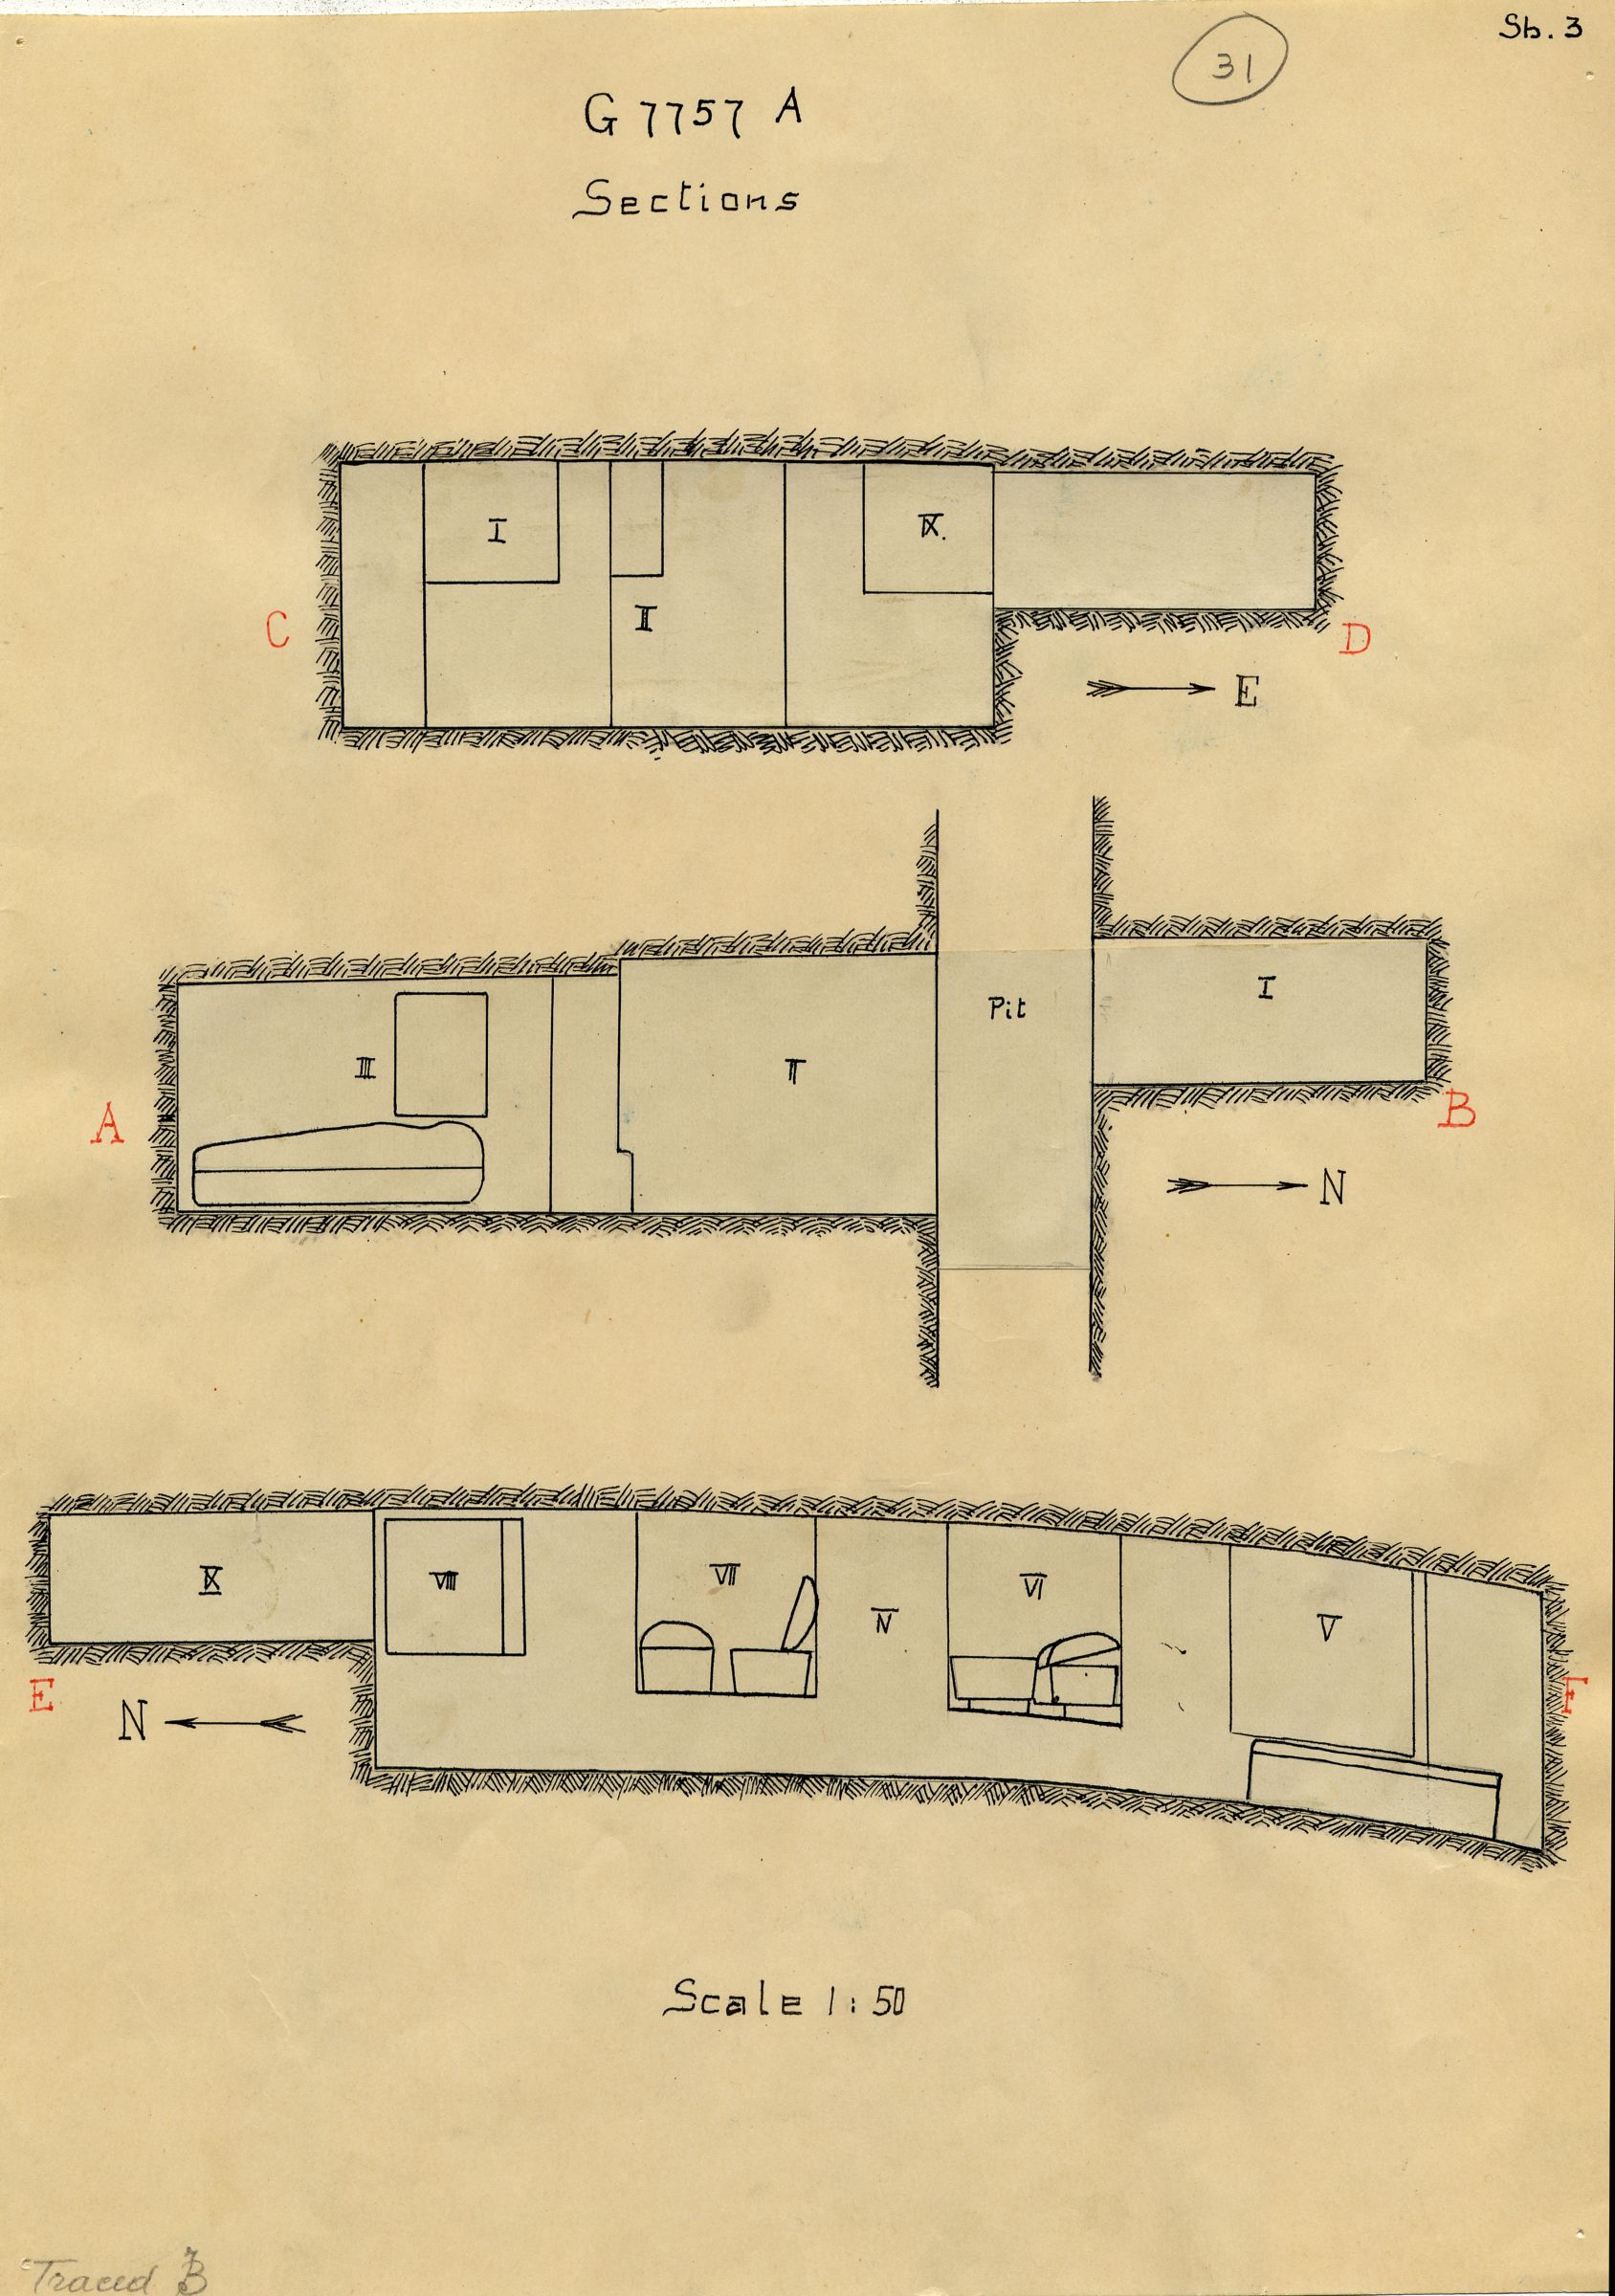 Maps and plans: G 7757, Shaft A